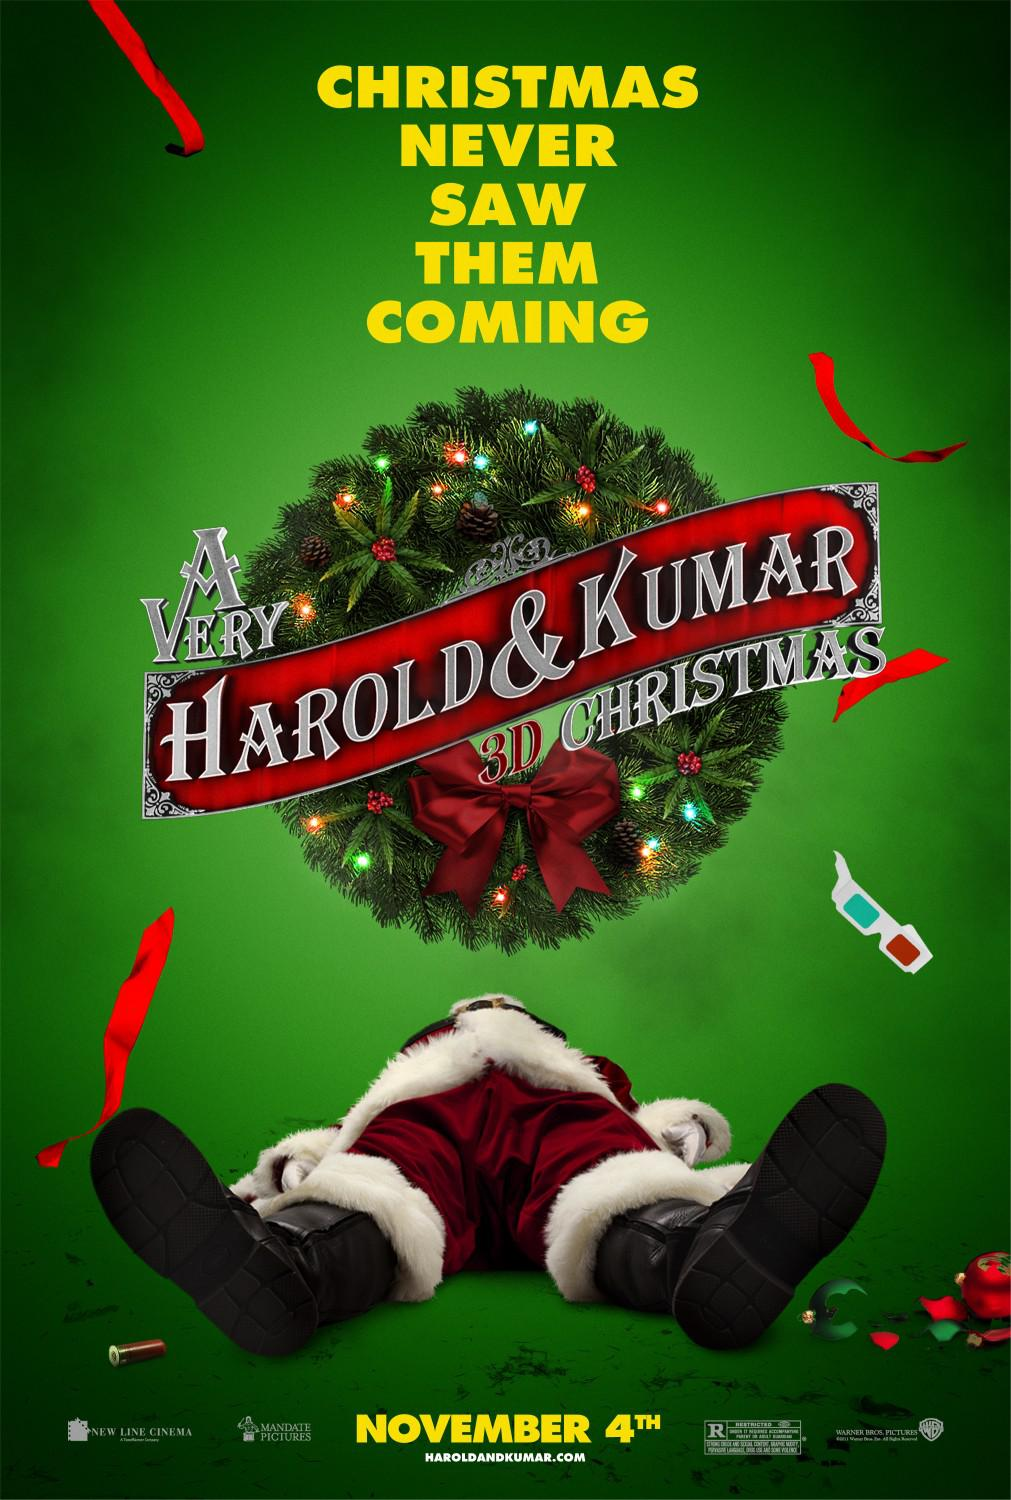 Very Harold and Kumar Christmas - Un Natale da Ricordare - Christmas never saw them coming - poster